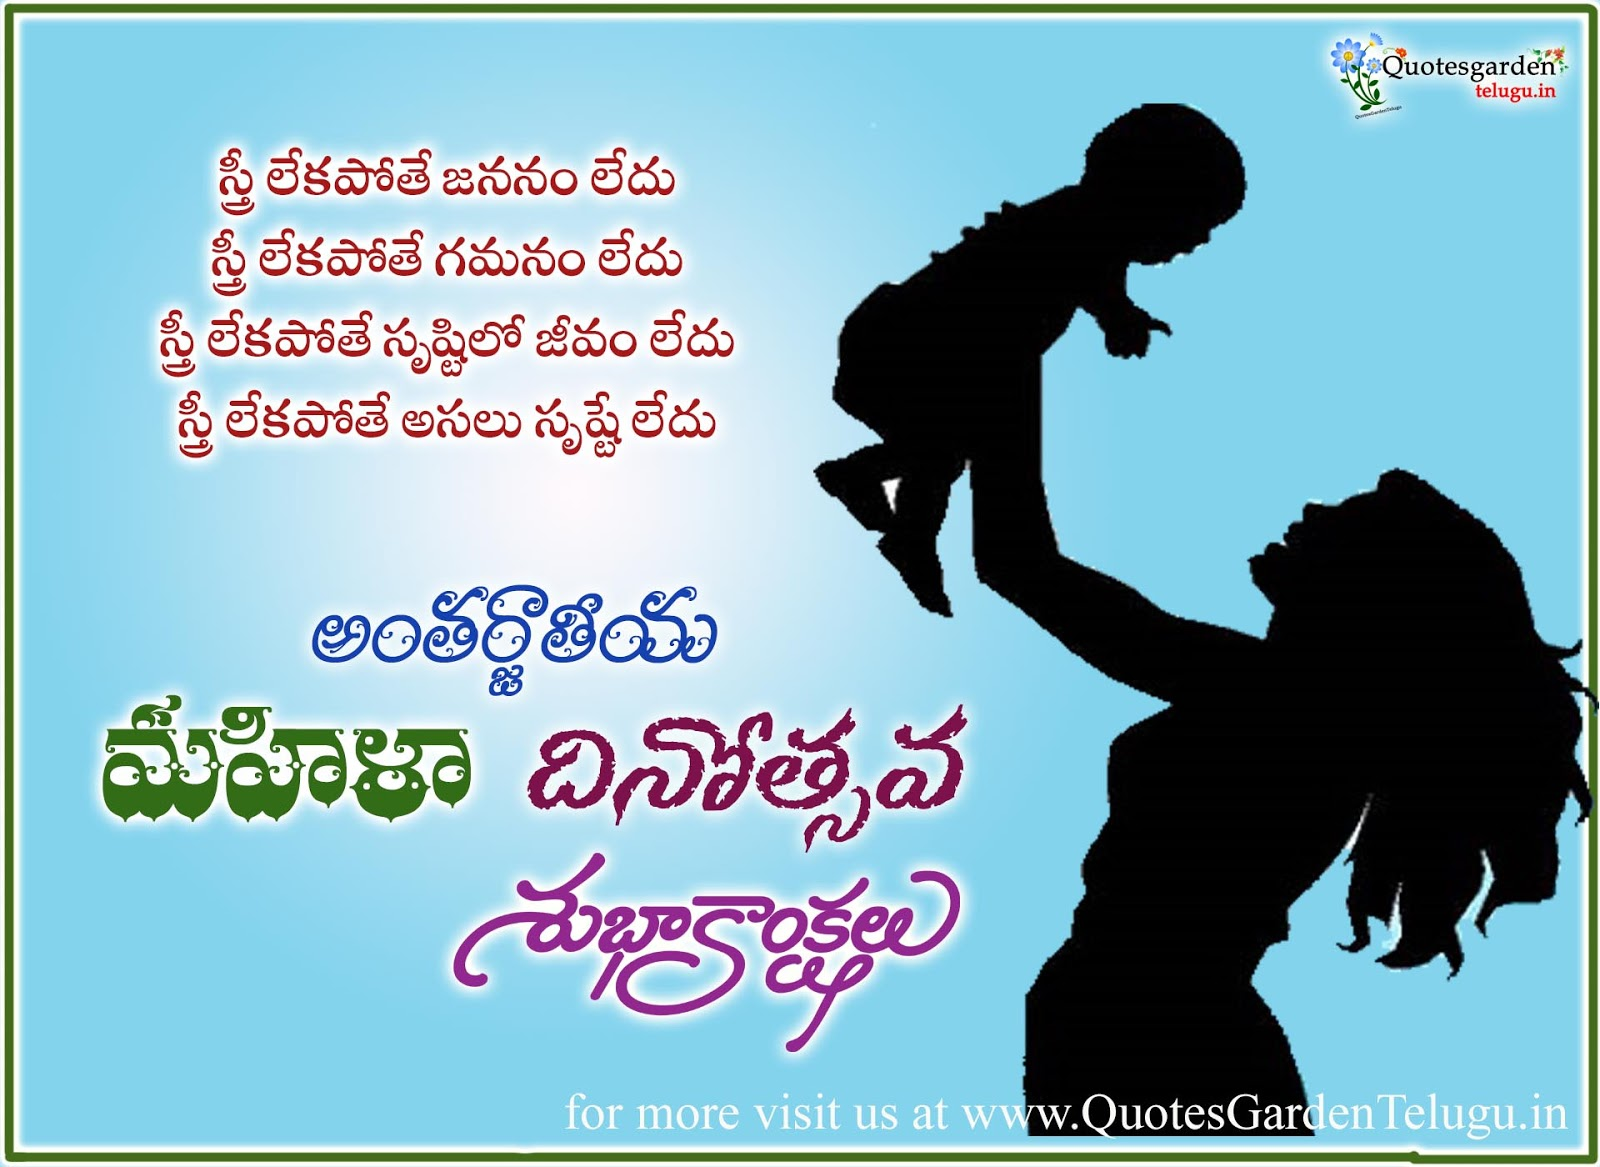 Womens Day Quotes Wishes Messages Greetings Quotes Garden Telugu